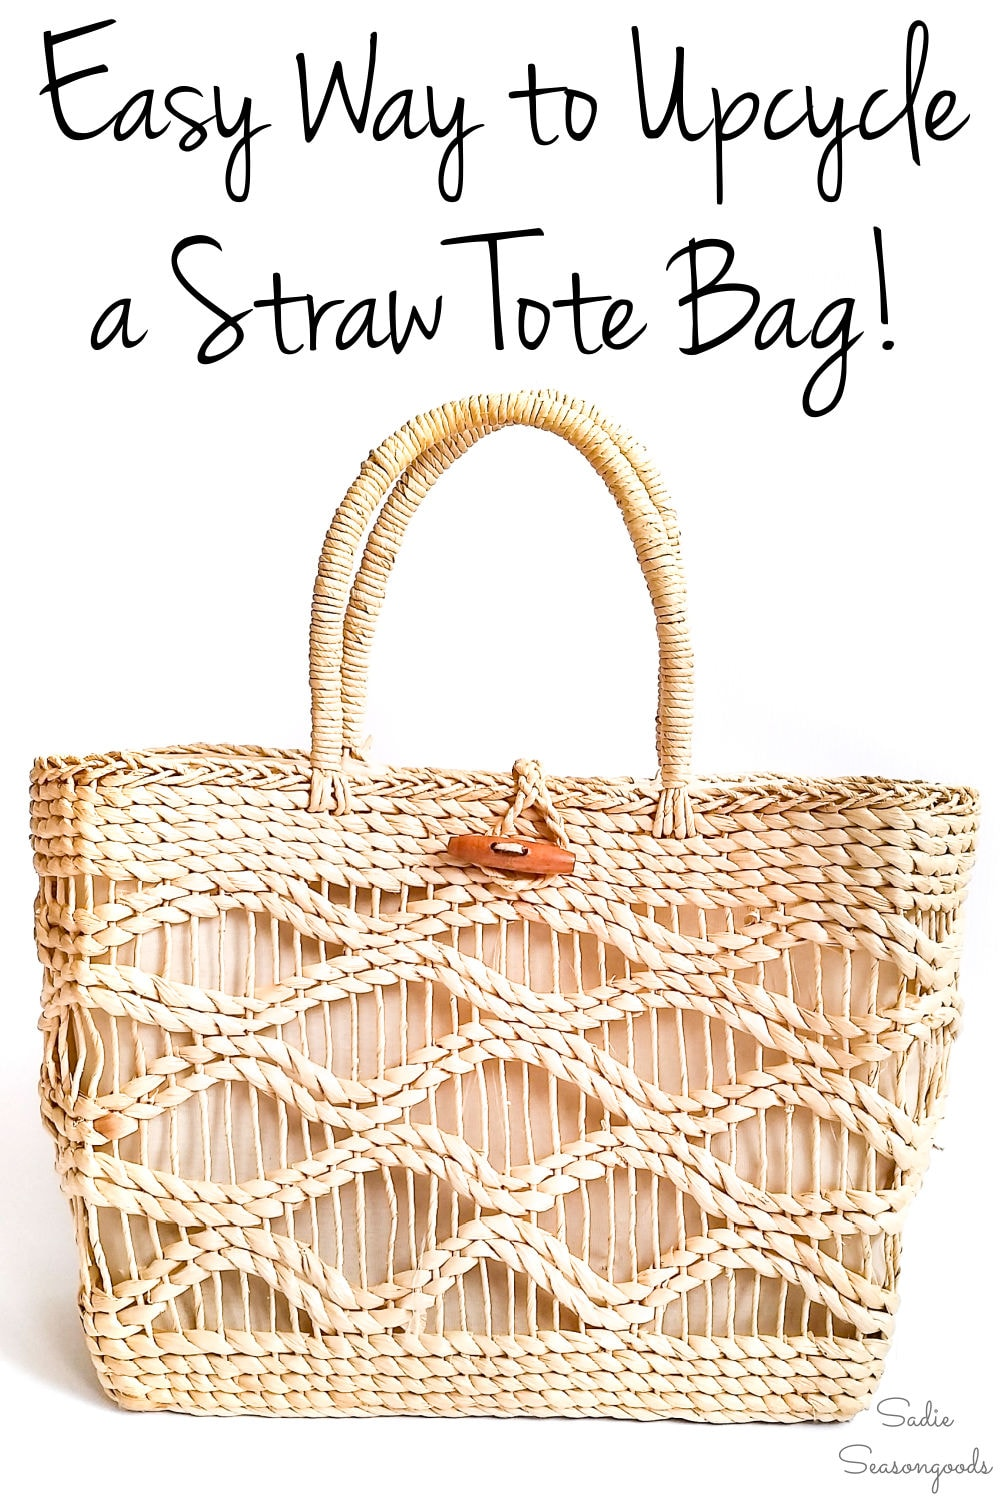 Easy upcycling idea for a tote bag